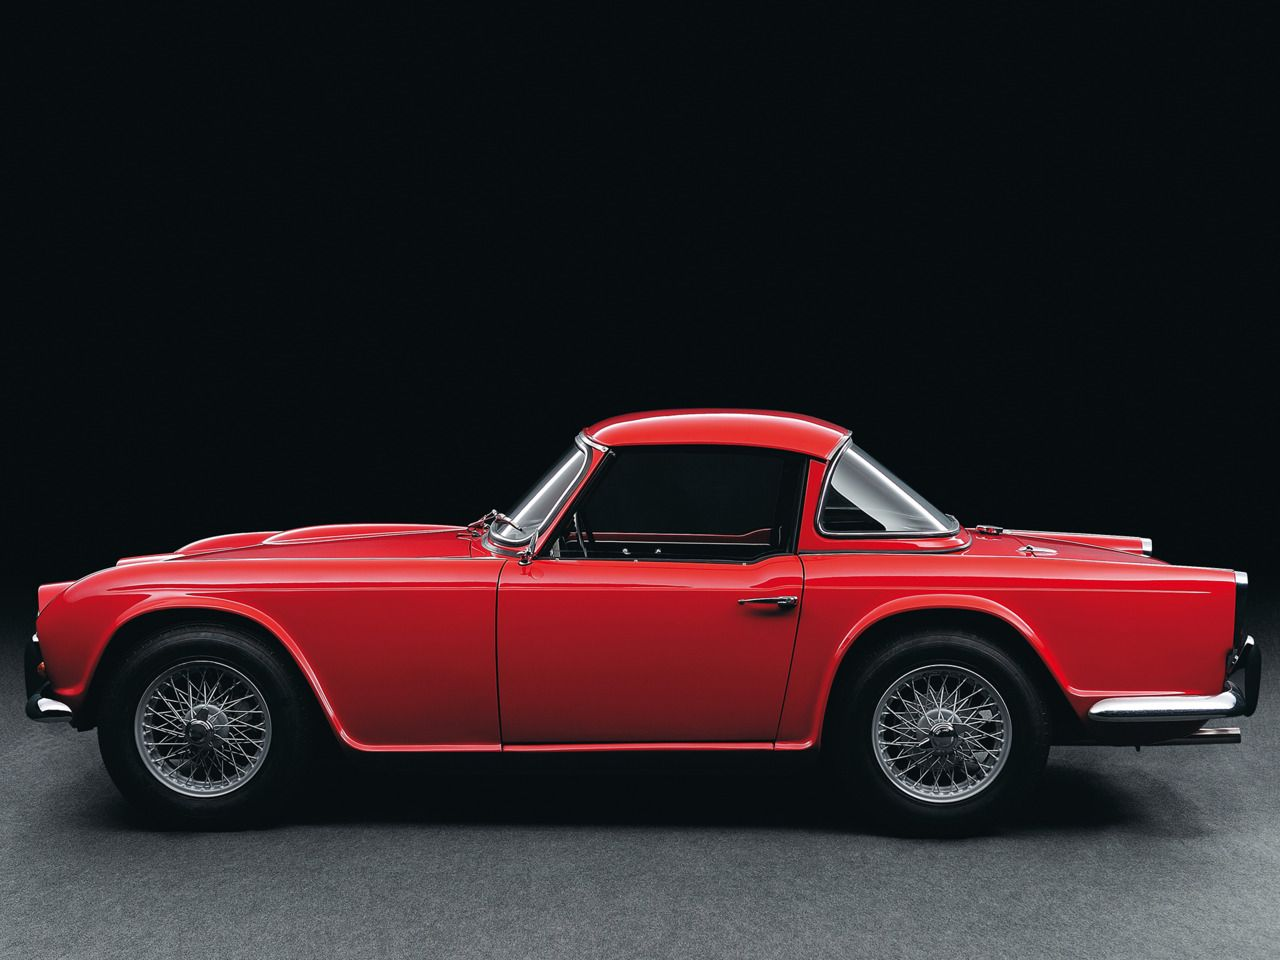 1961 Triumph TR4 with Surrey top Maintenance/restoration of